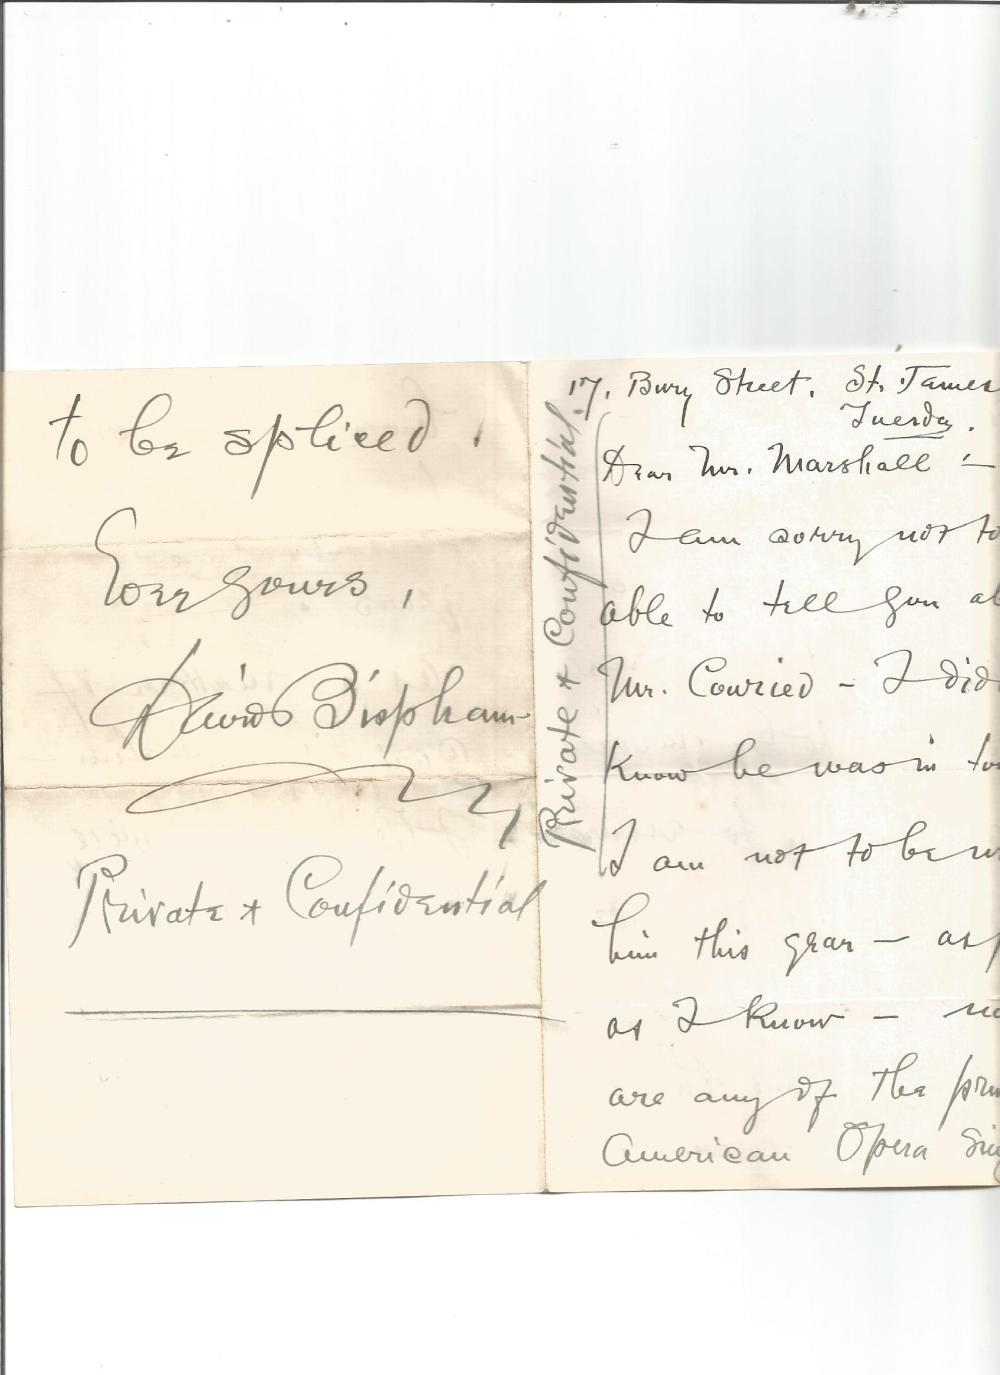 David Bispham handwritten 4 page letter with amusing content about a rumour he was about to be